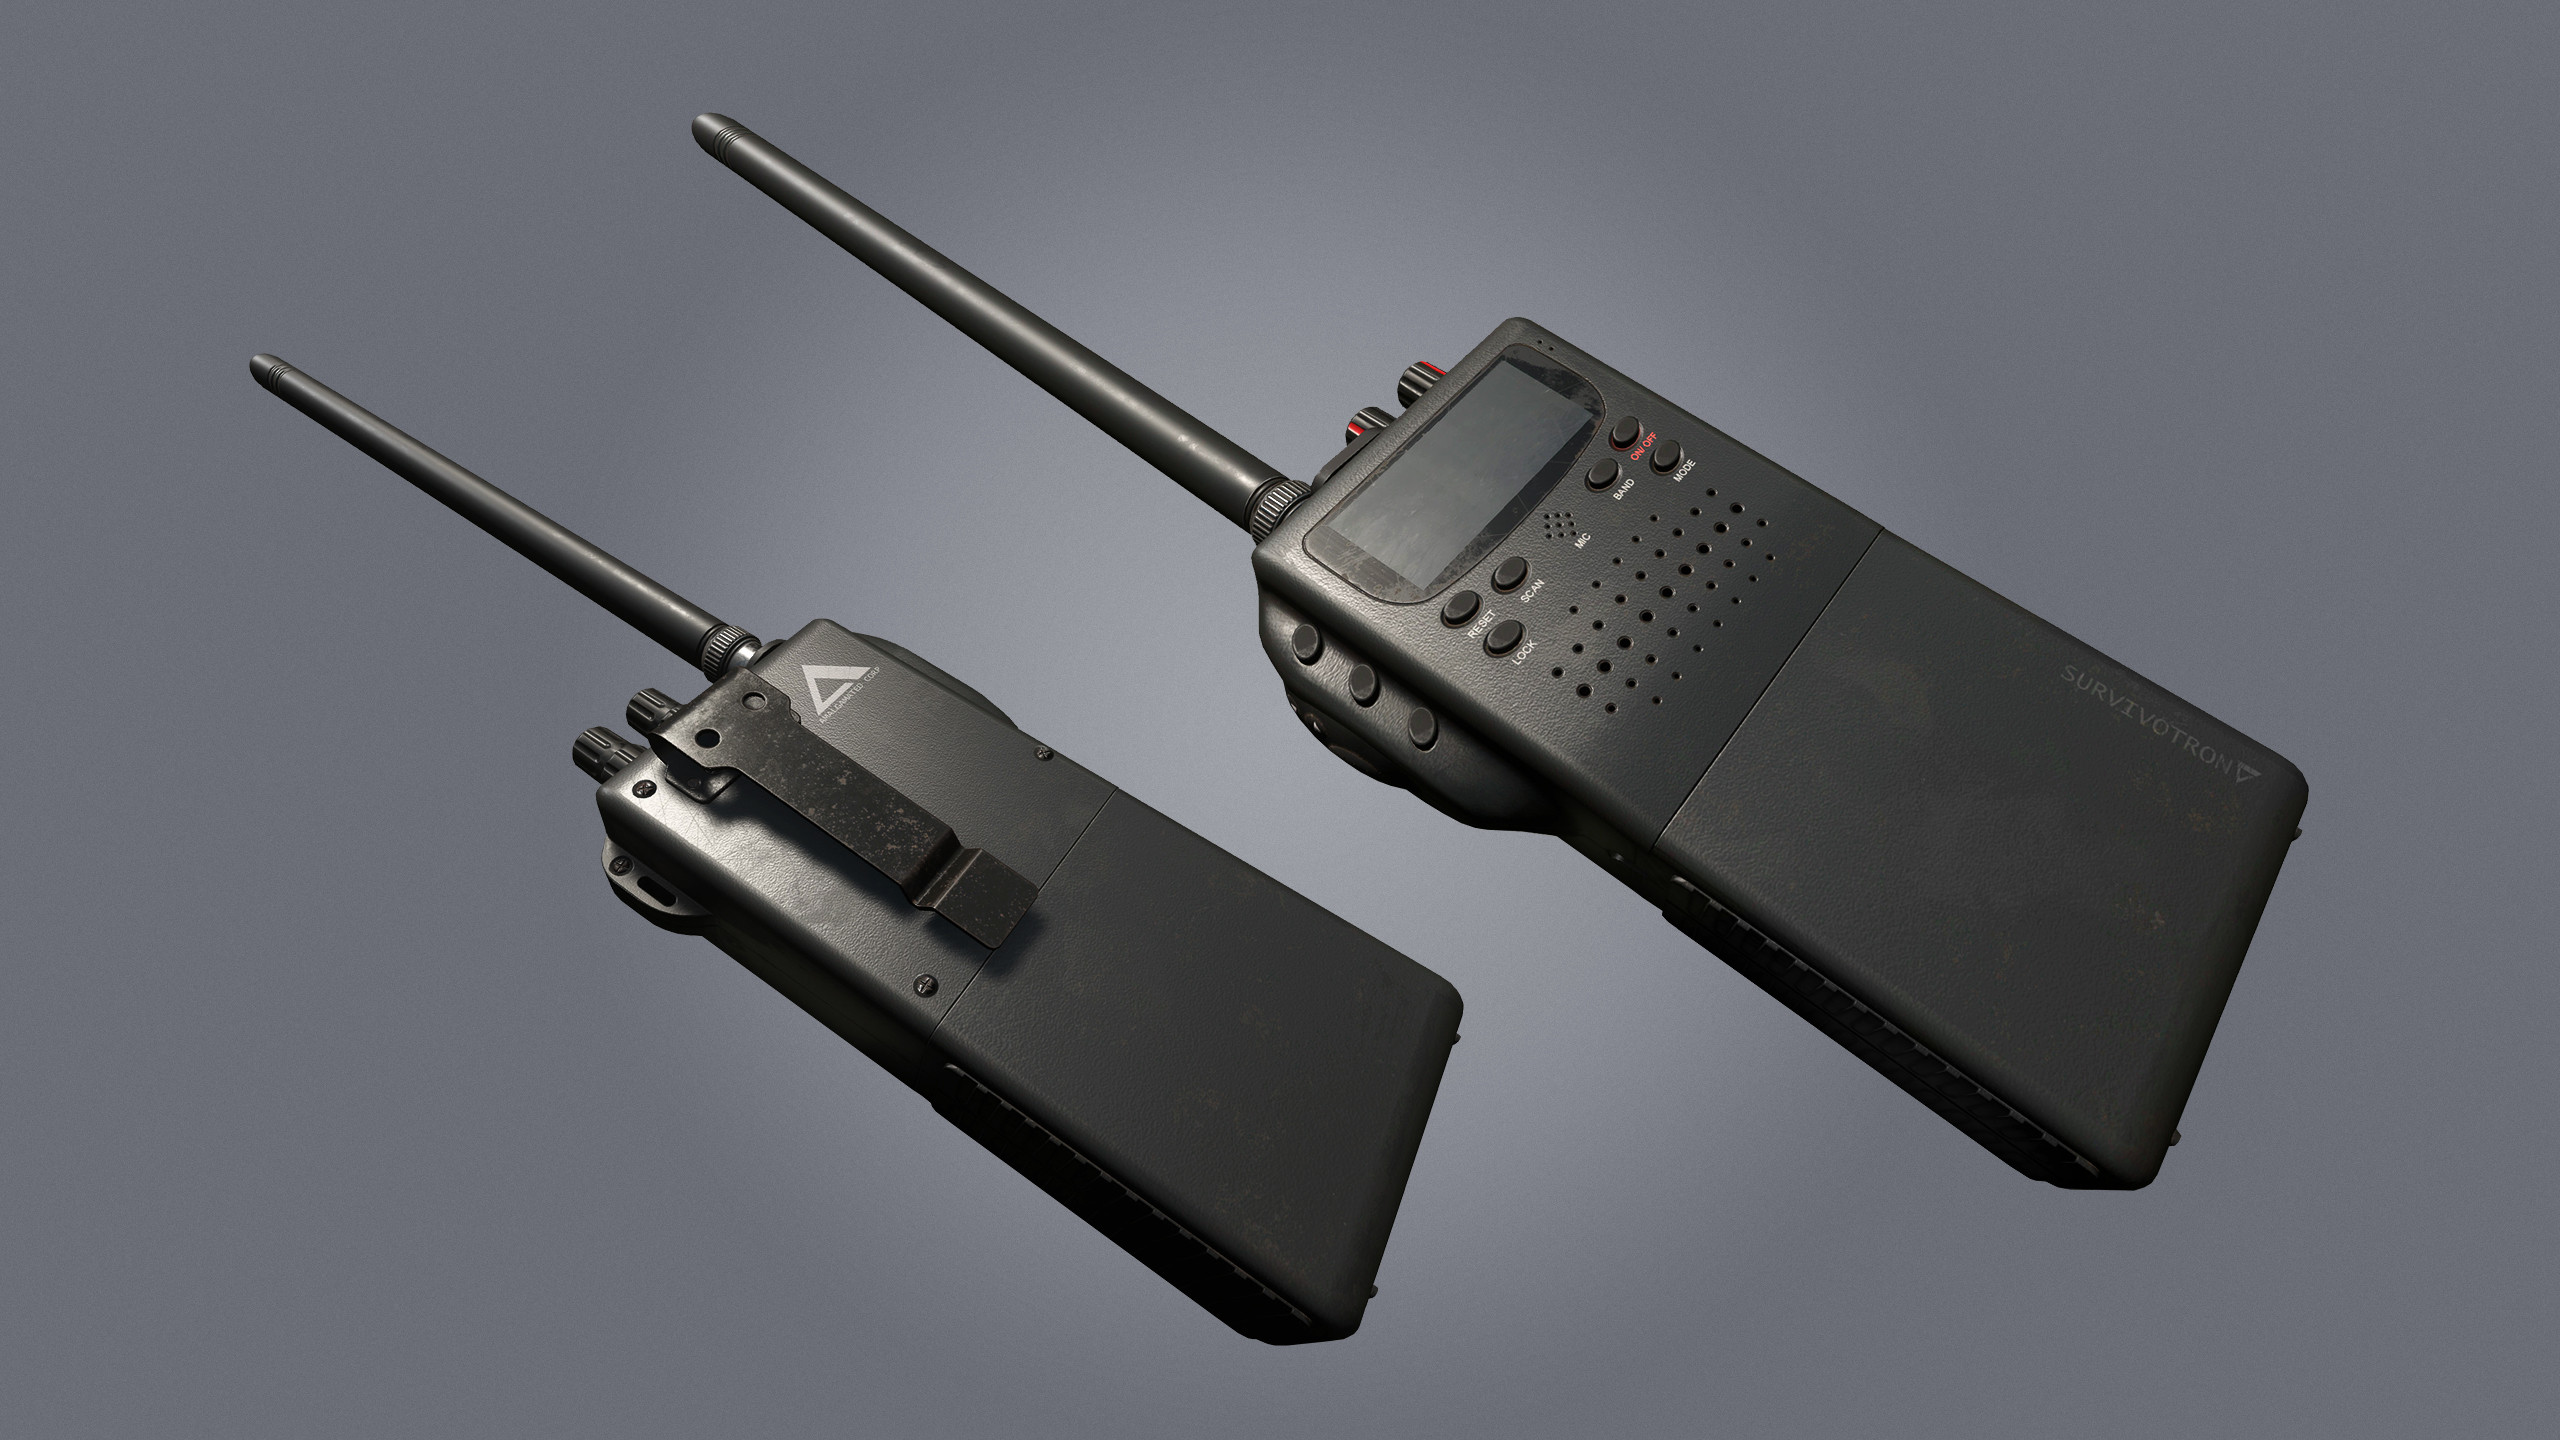 Handheld Radio, used to communicate with other survivors on different channels.